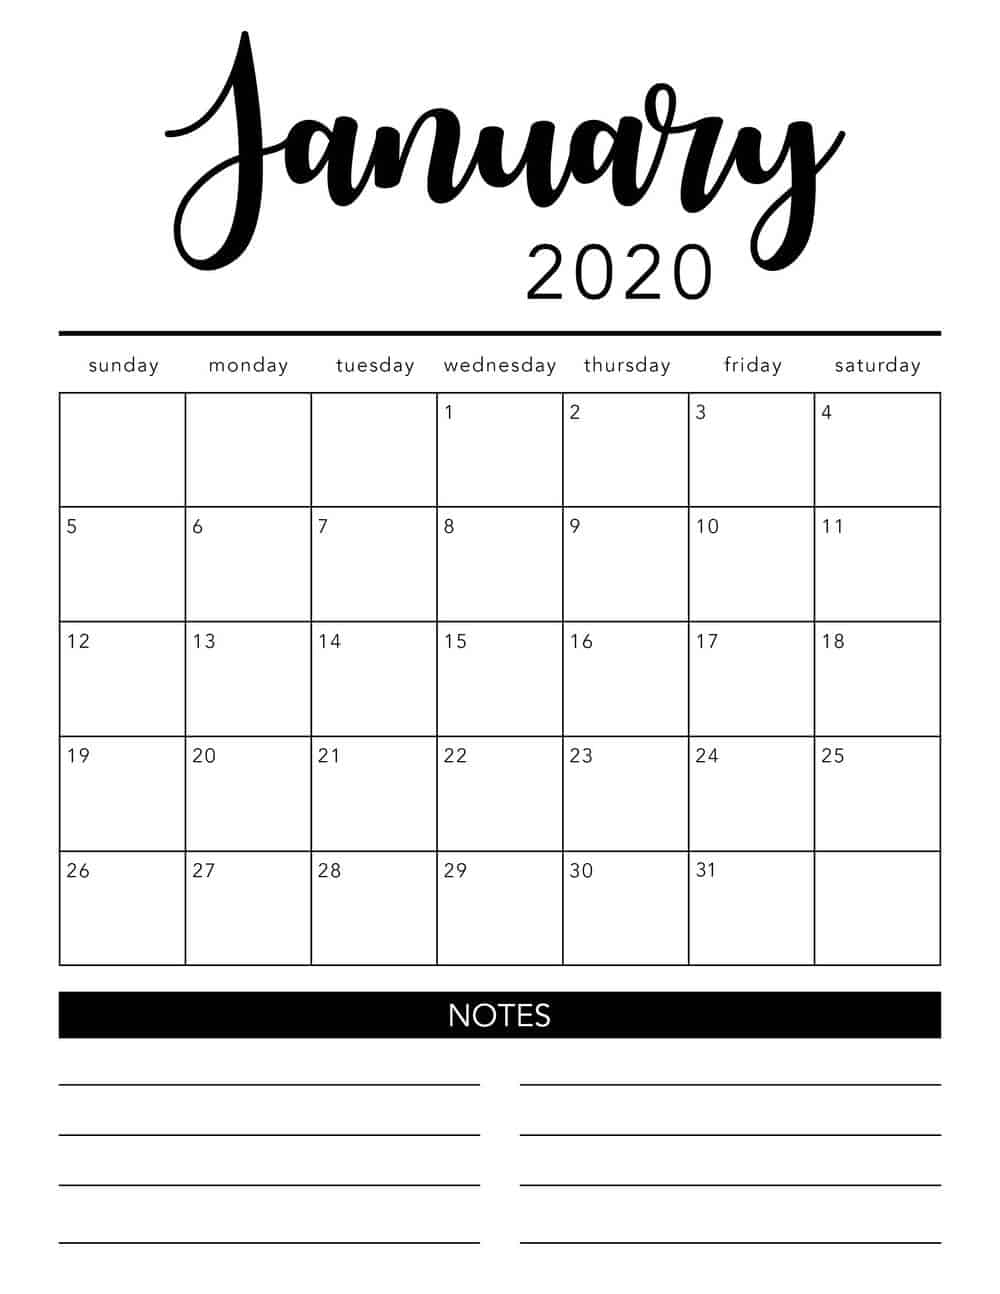 Free 2020 Printable Calendar Template (2 Colors!) - I Heart intended for Free Printable Monthly 2020 Calendar